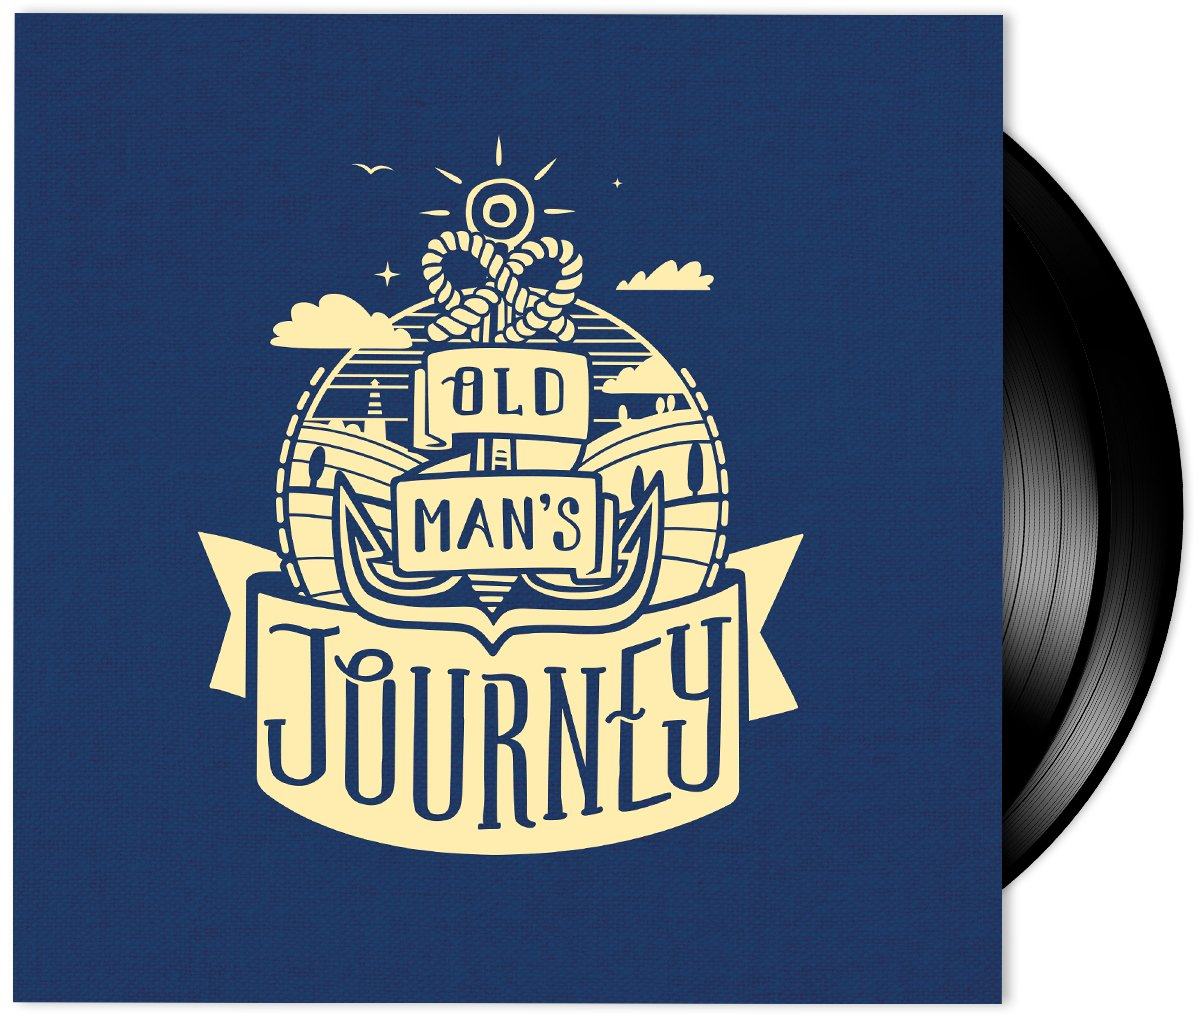 "OLD MAN'S JOURNEY - 2xLP 10"" VINYL SOUNDTRACK - iam8bit (Asie et Océanie)"